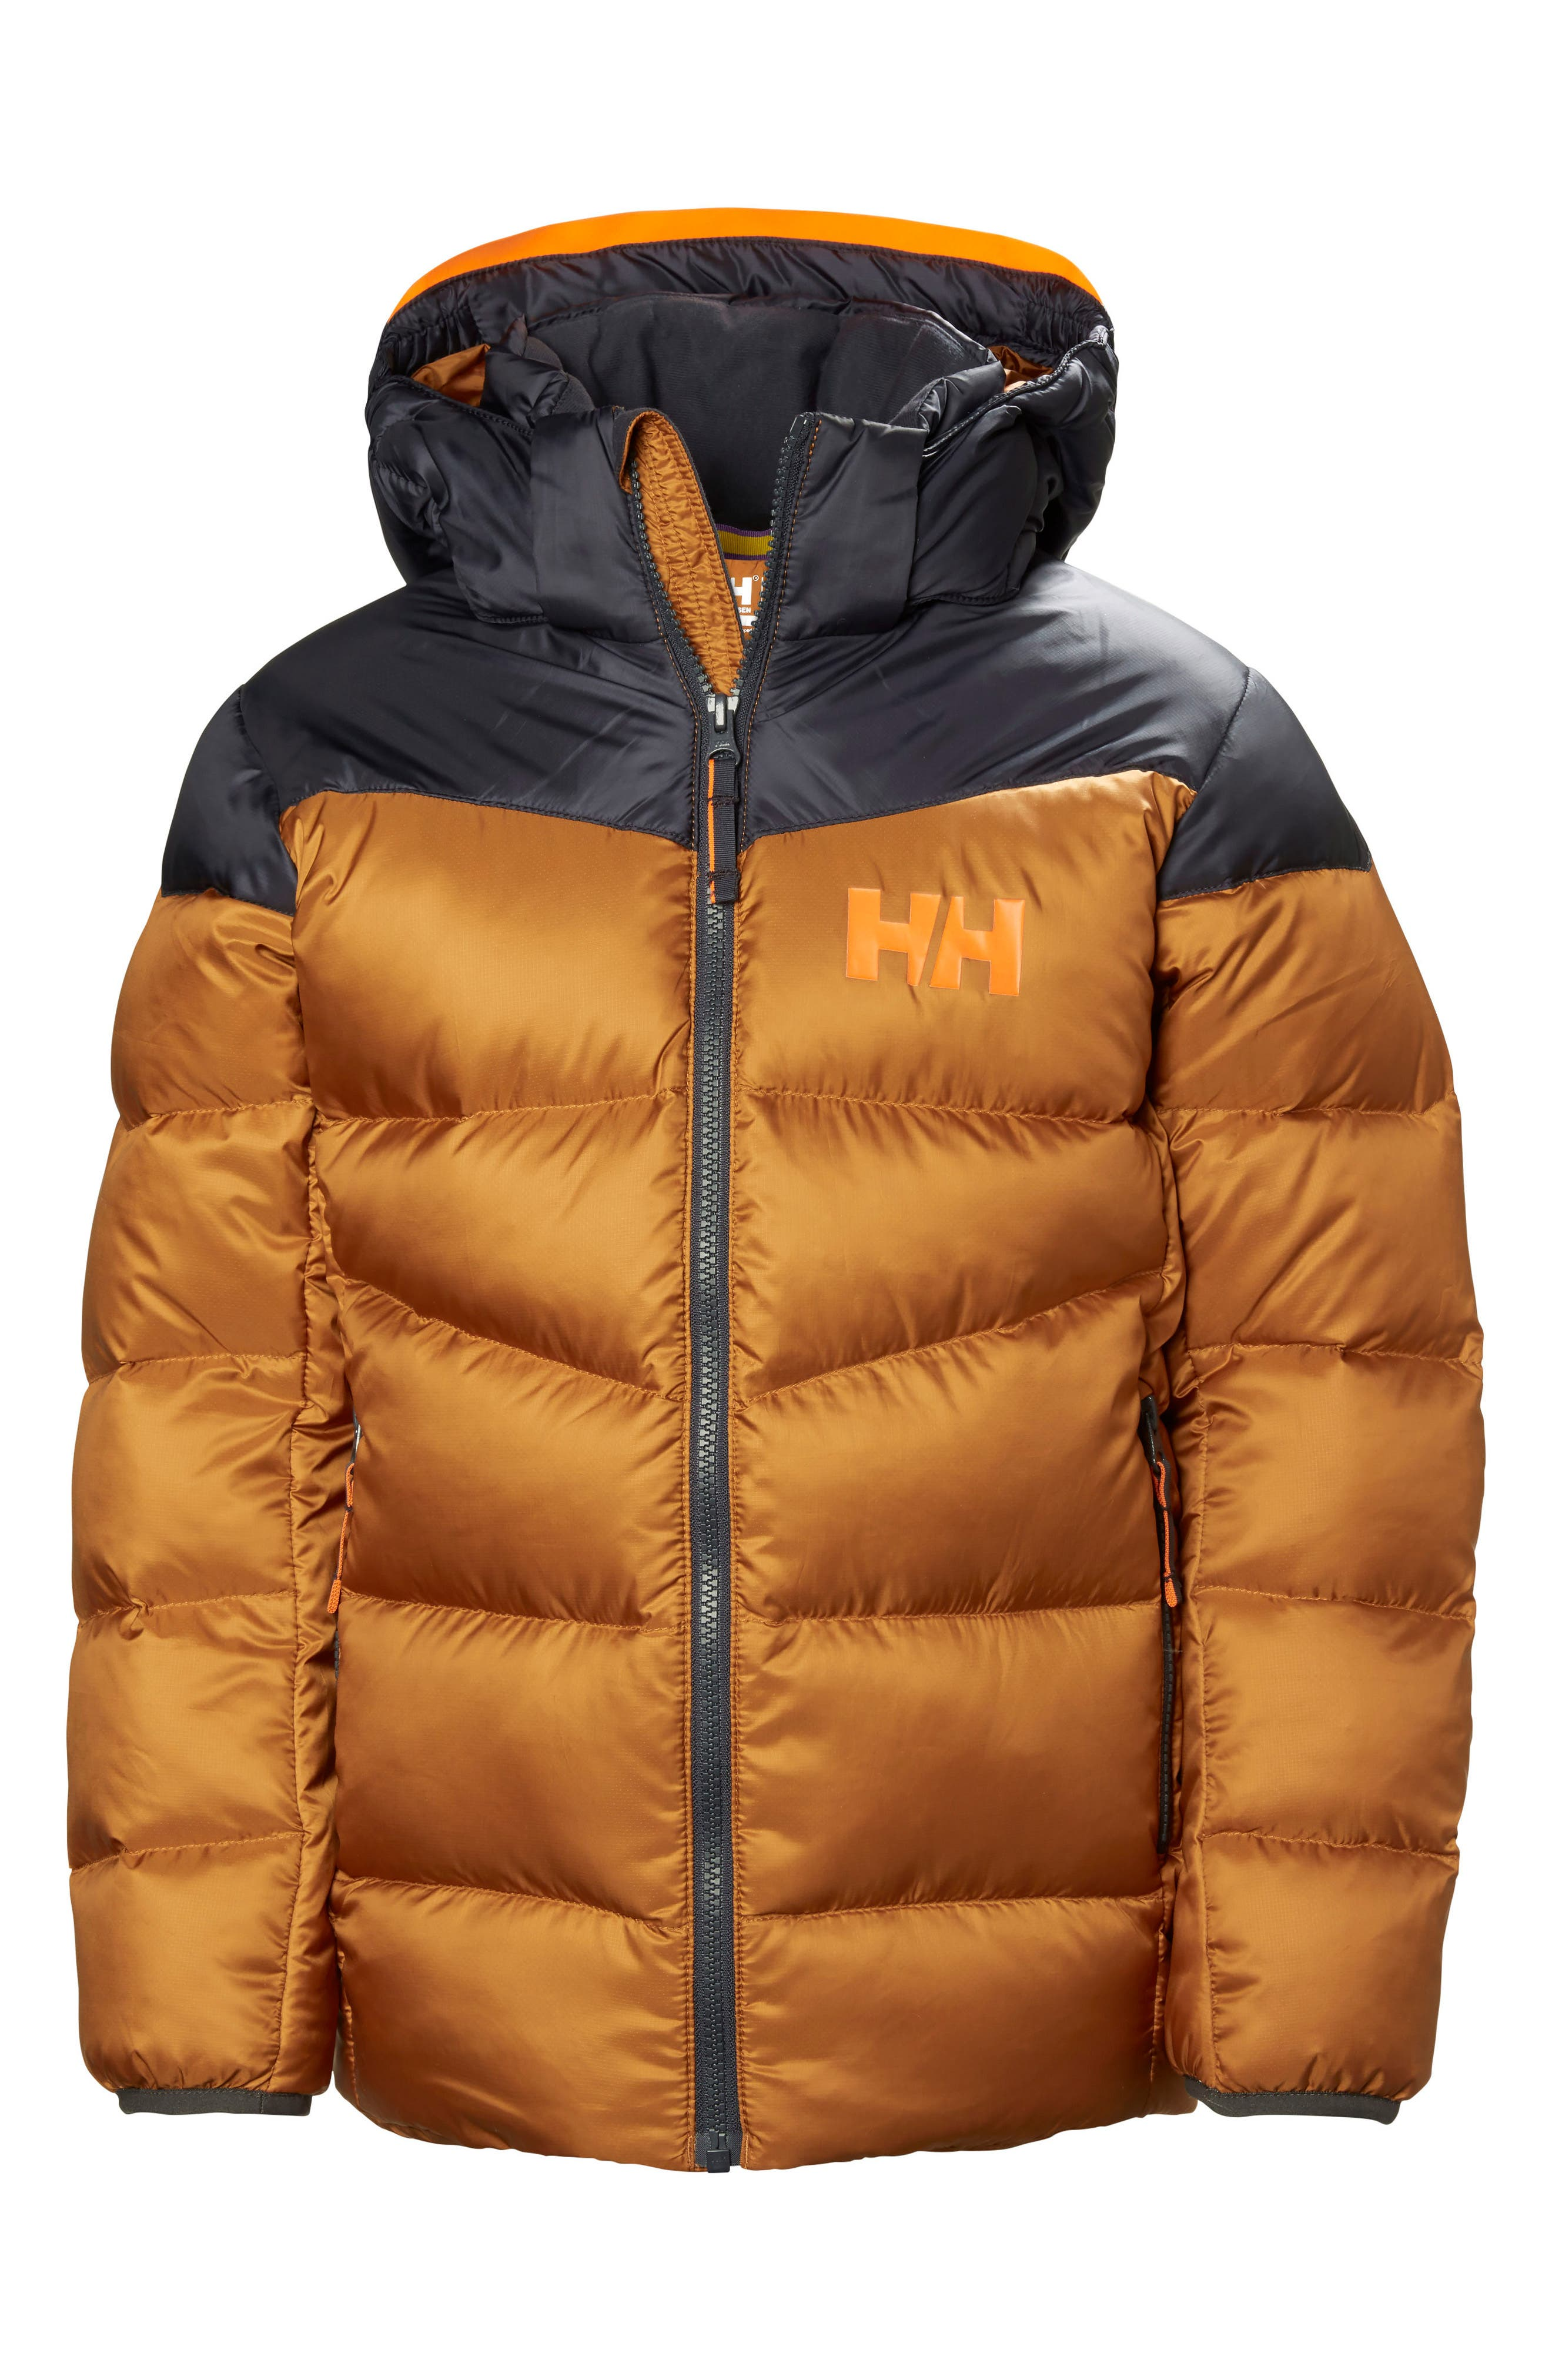 Fjord Water Resistant Puffer Jacket,                         Main,                         color, Cinnamon